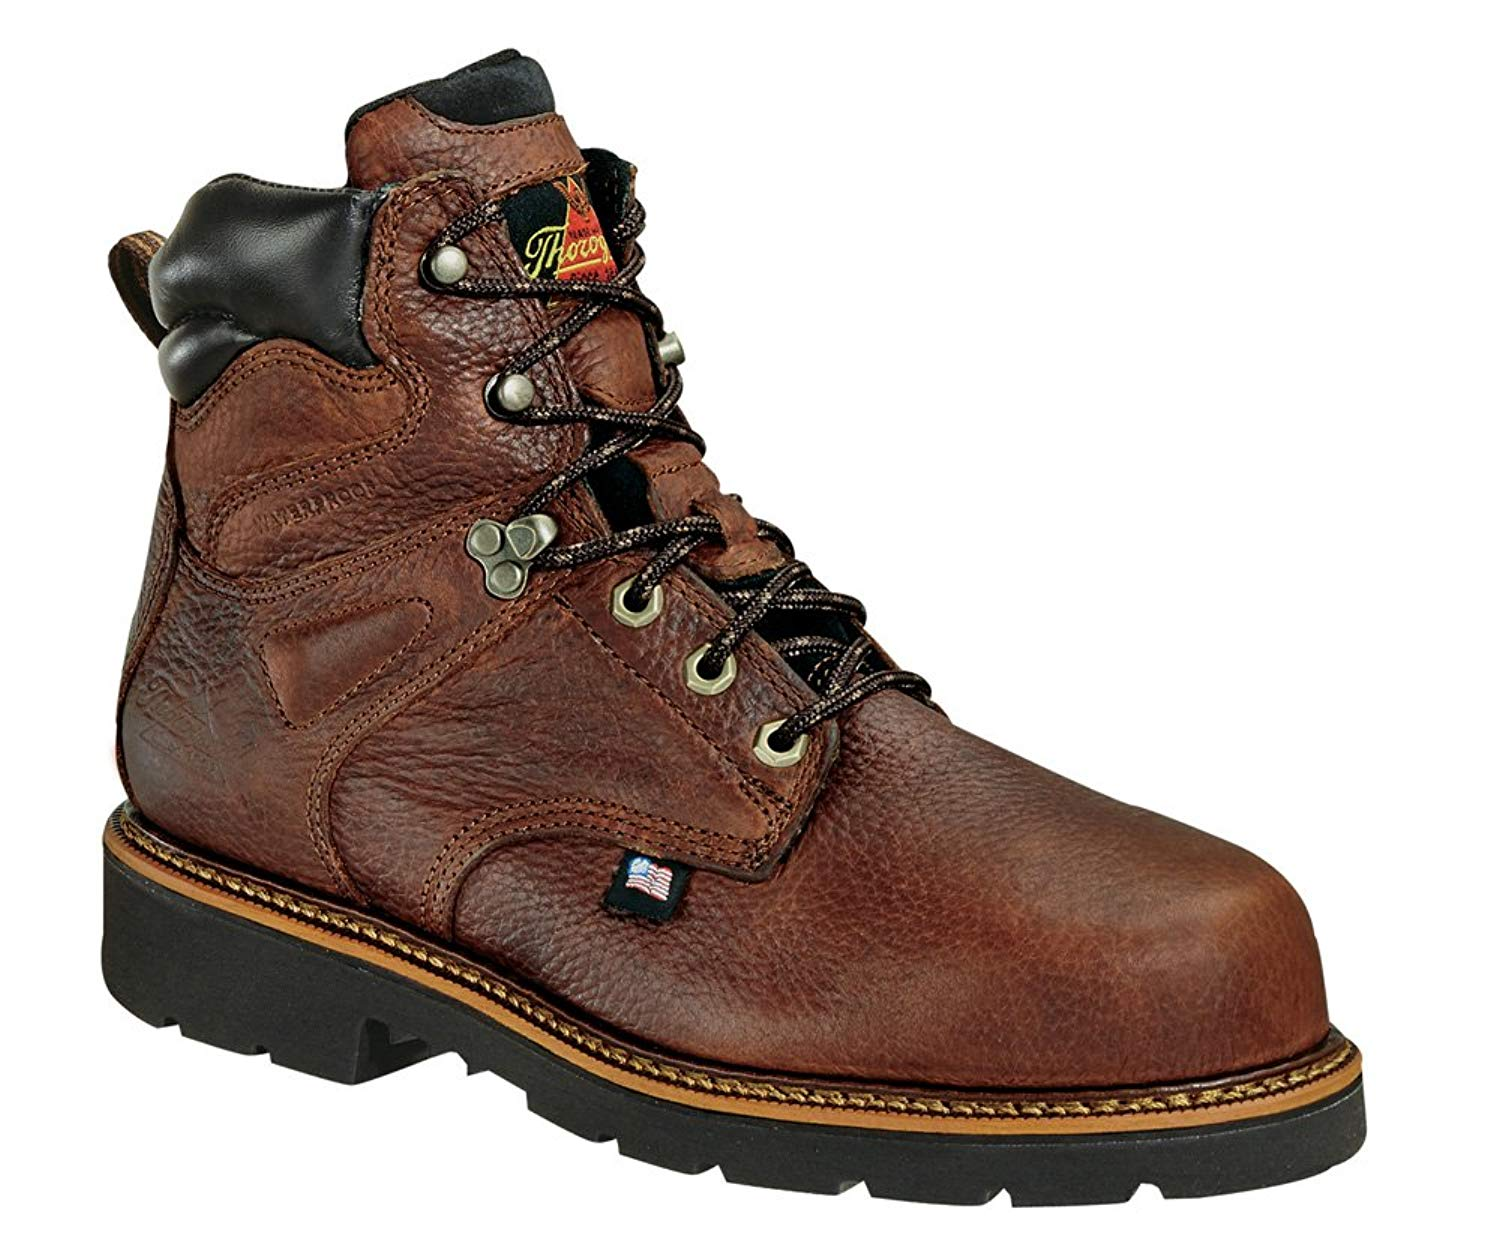 f0083002dce Cheap Thorogood Work Boots, find Thorogood Work Boots deals on line ...